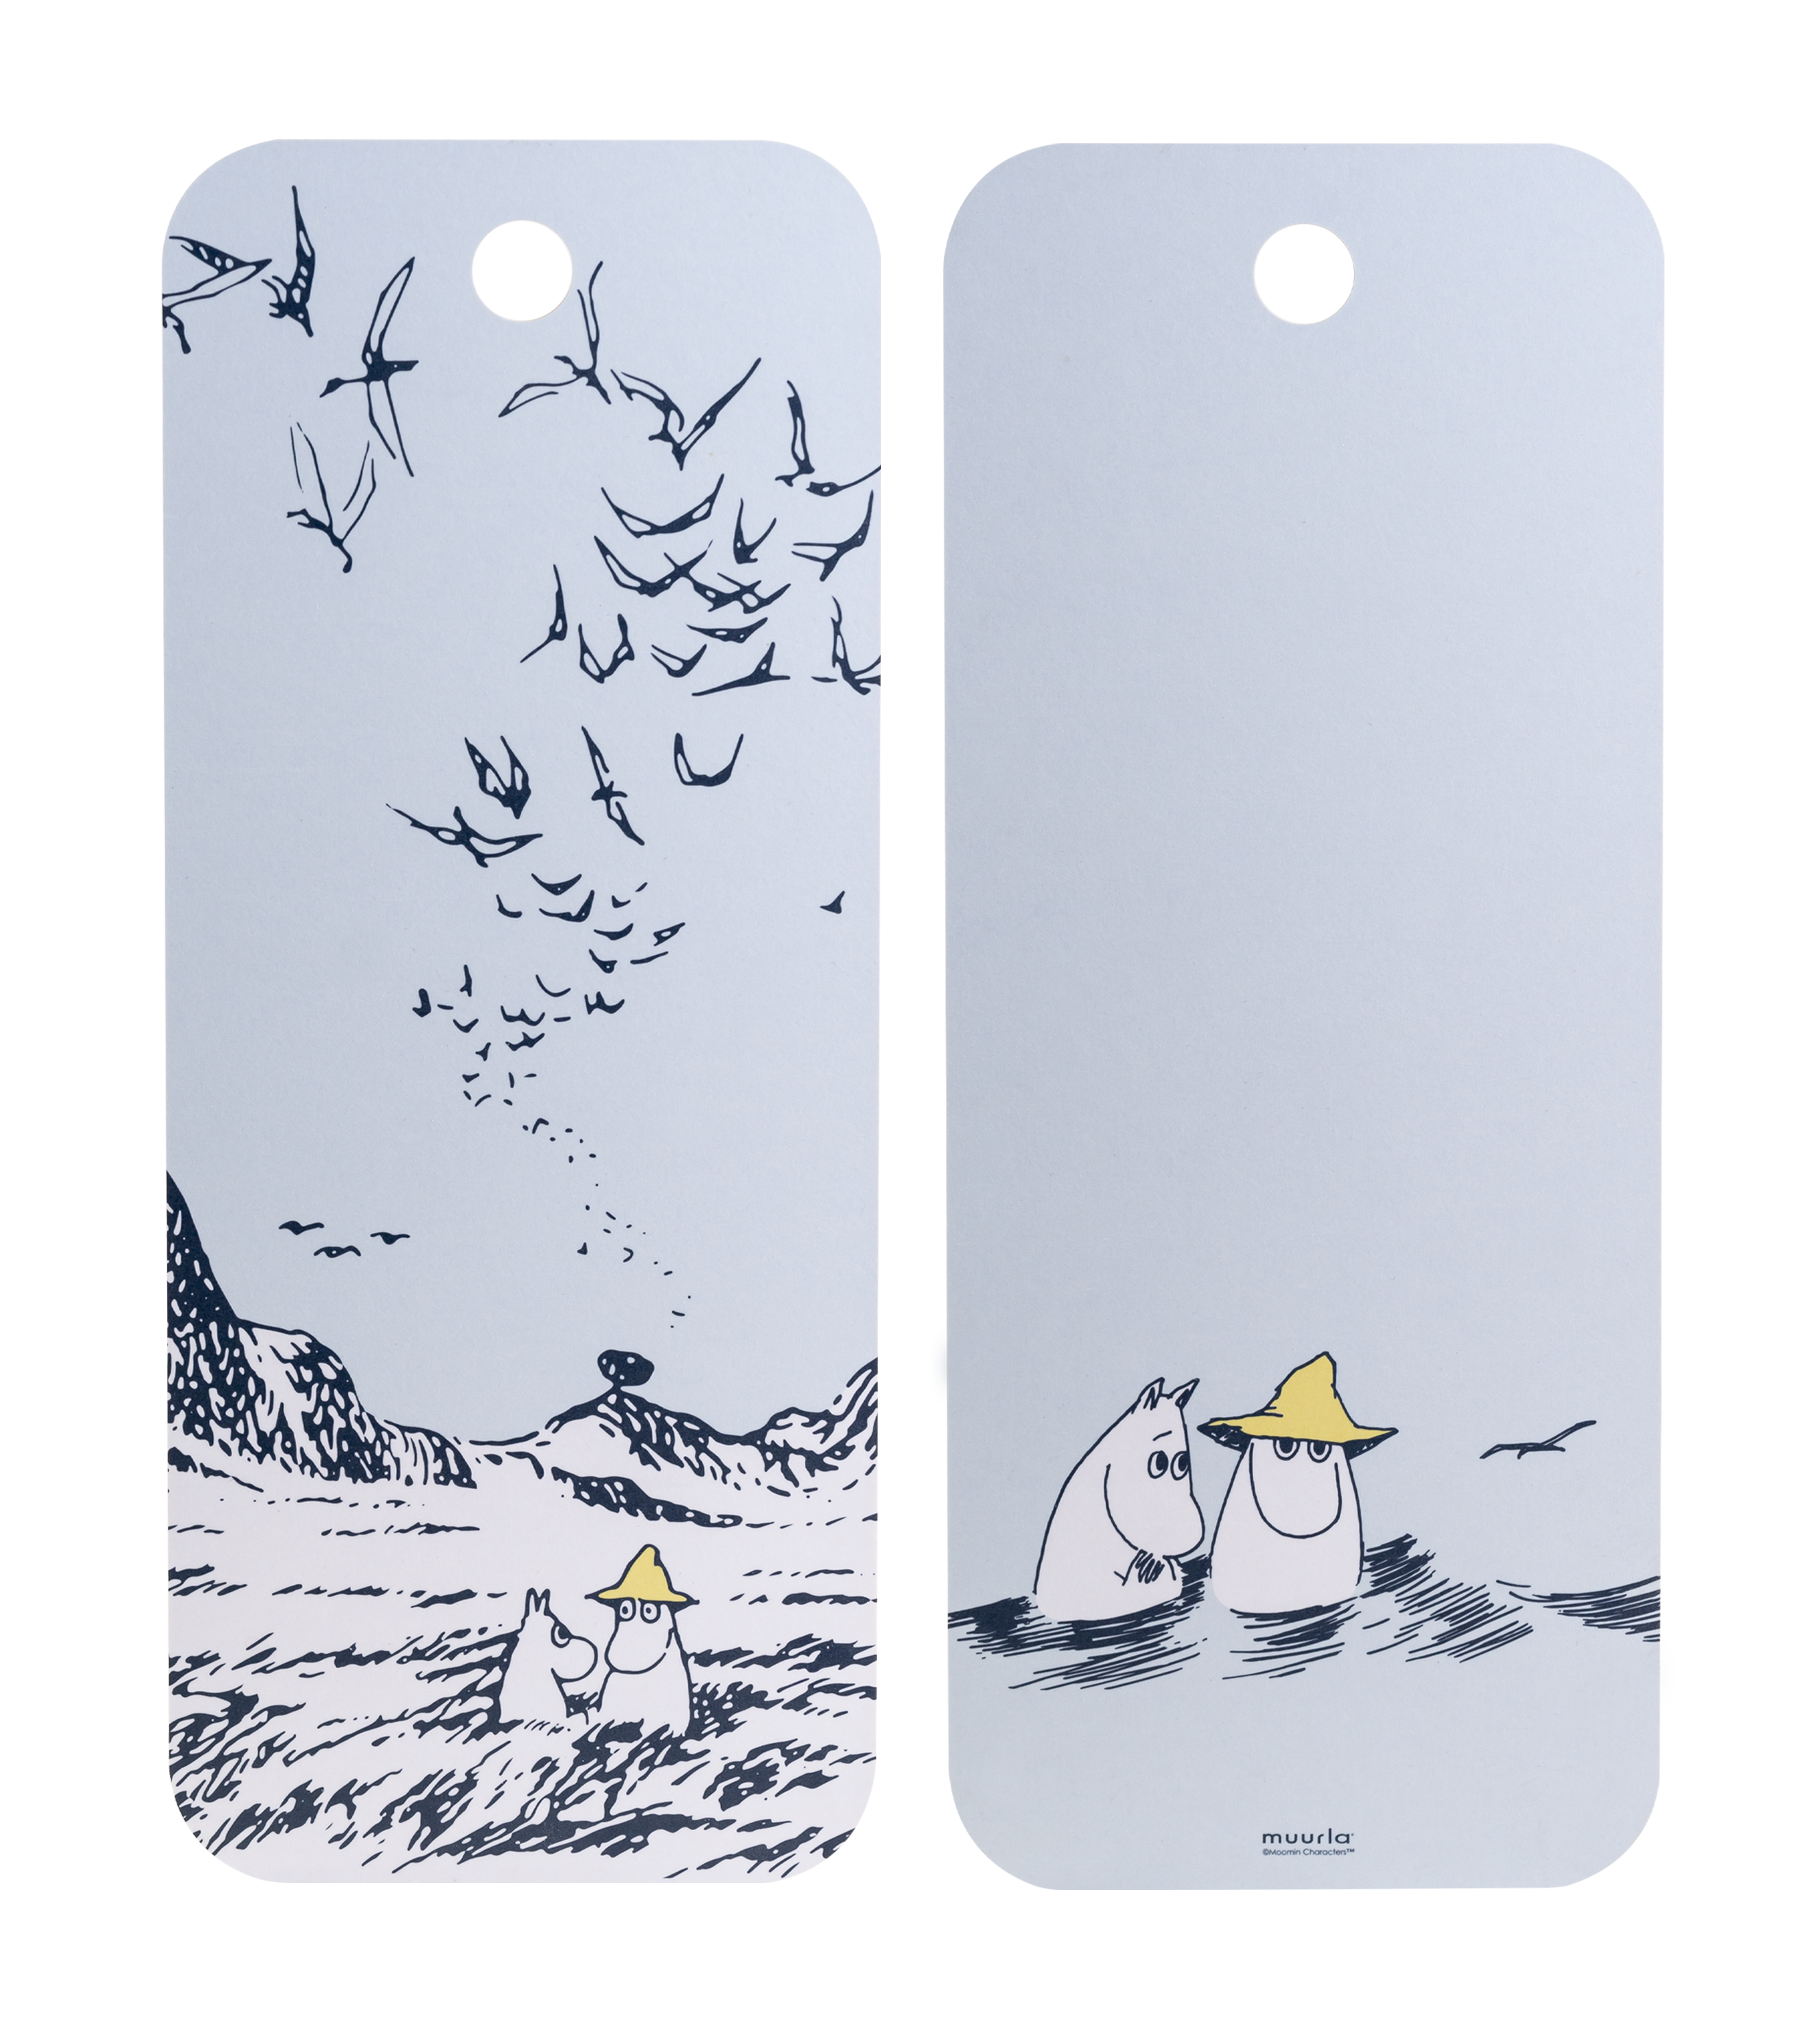 Moomin Originals by Muurla - Lighthouse Island - Chop & Serve board 18x44cm